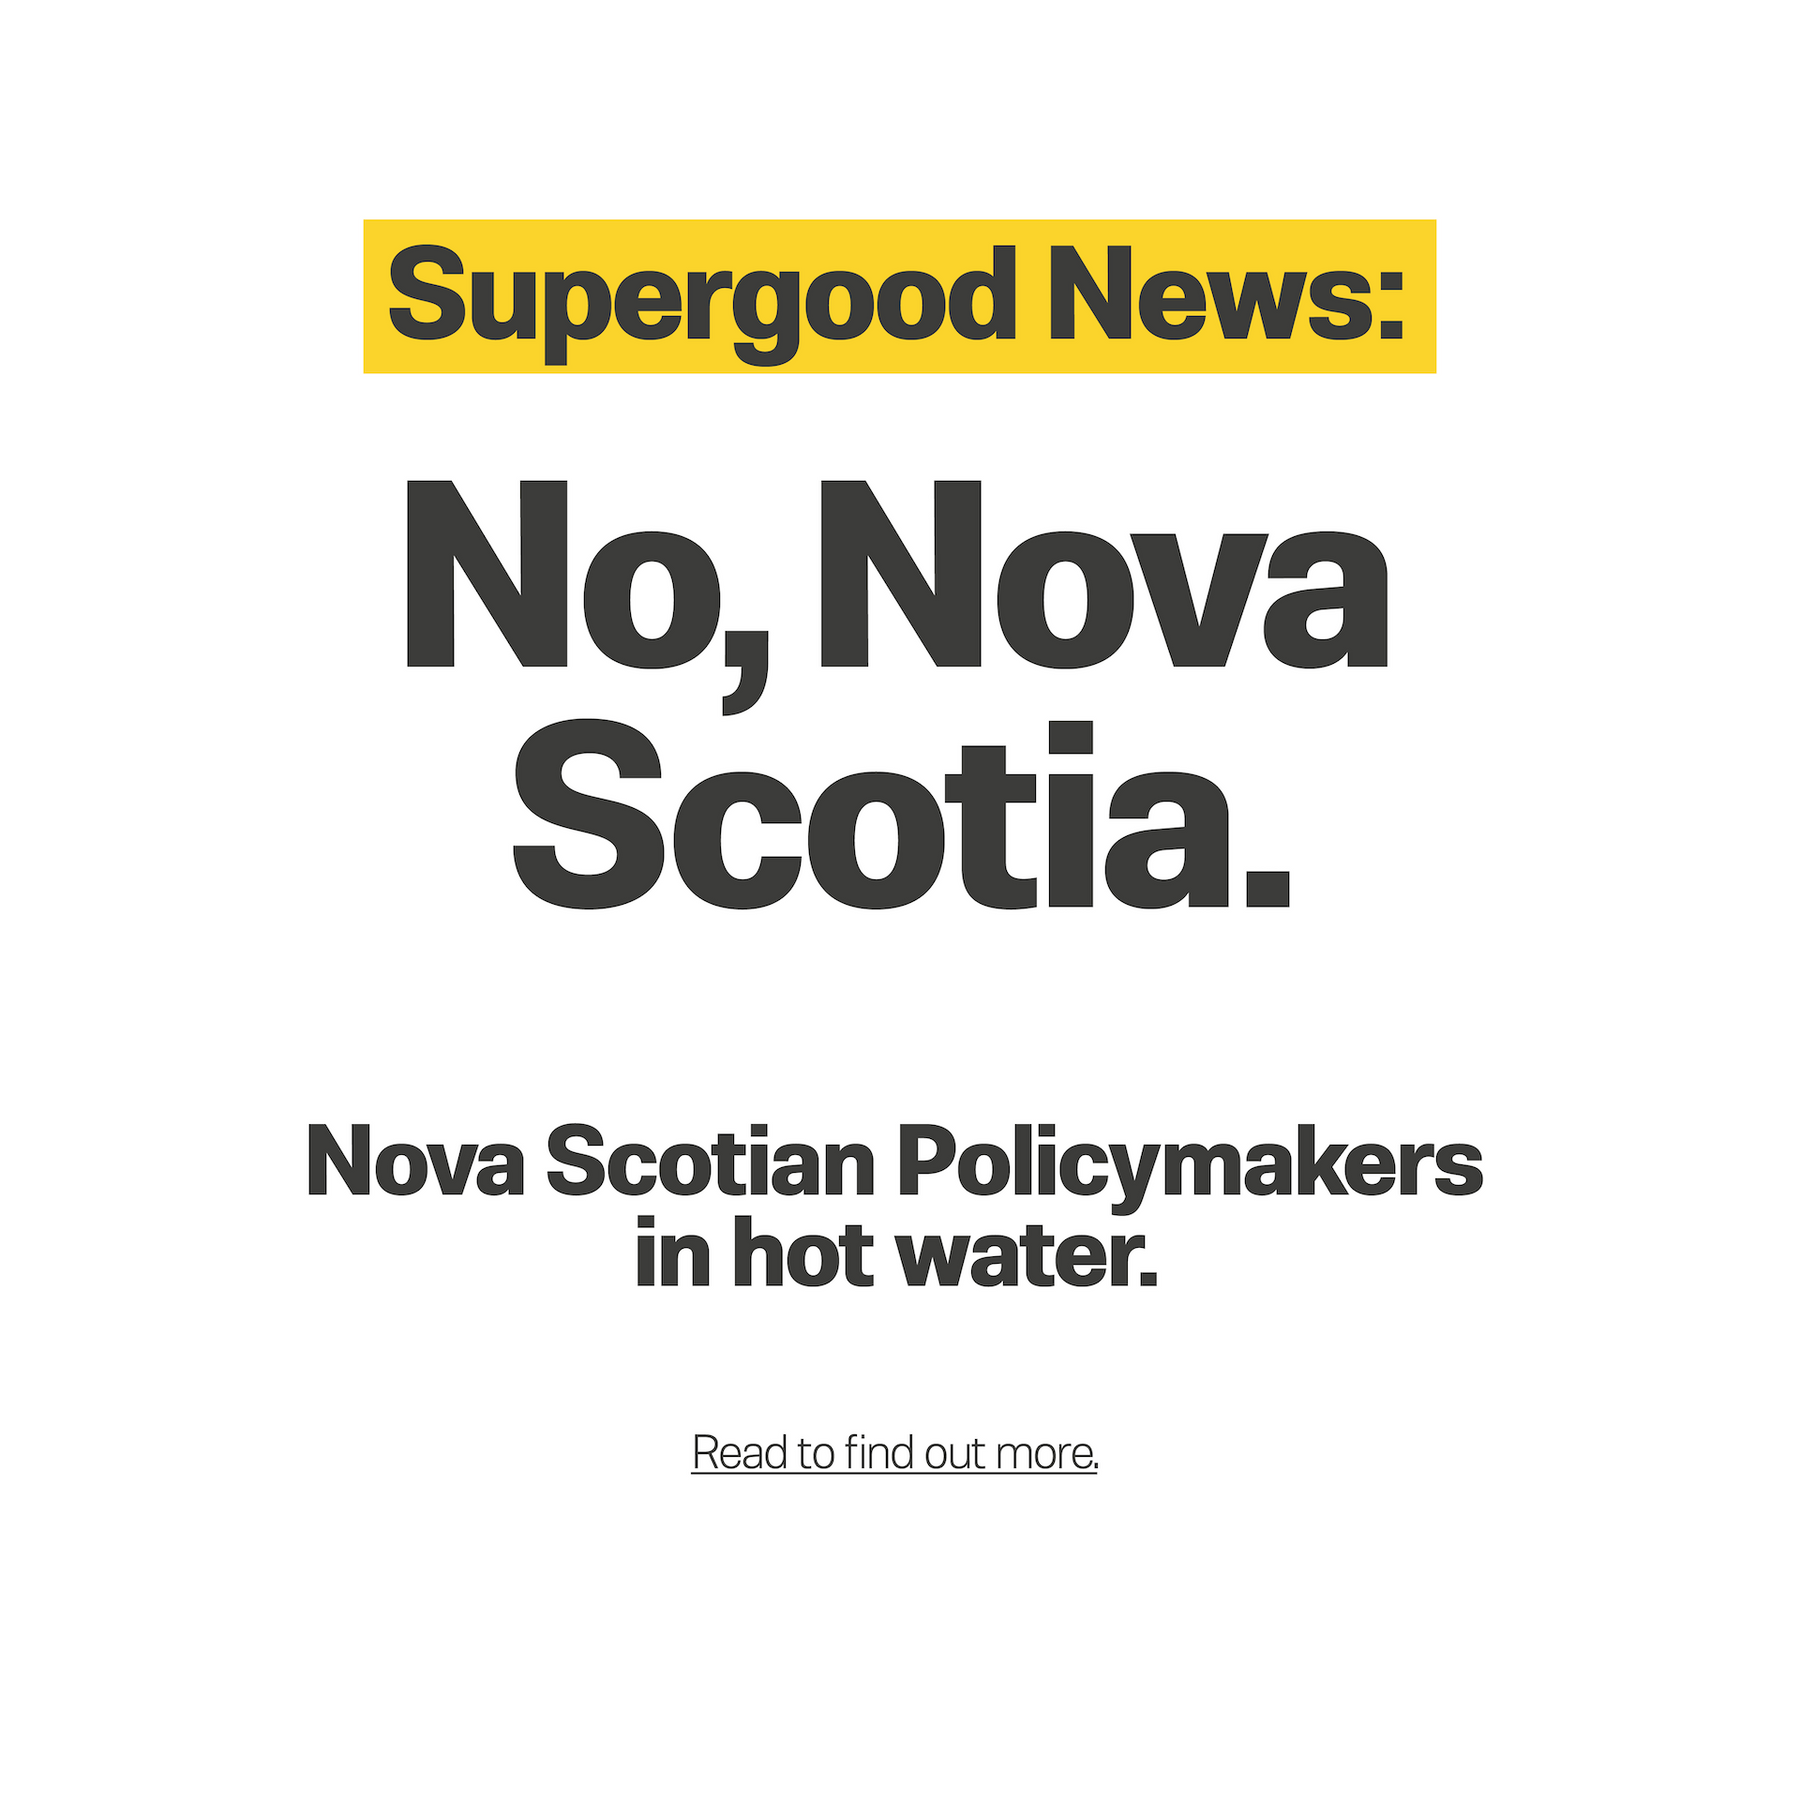 Nova Scotian Policymakers in hot water.